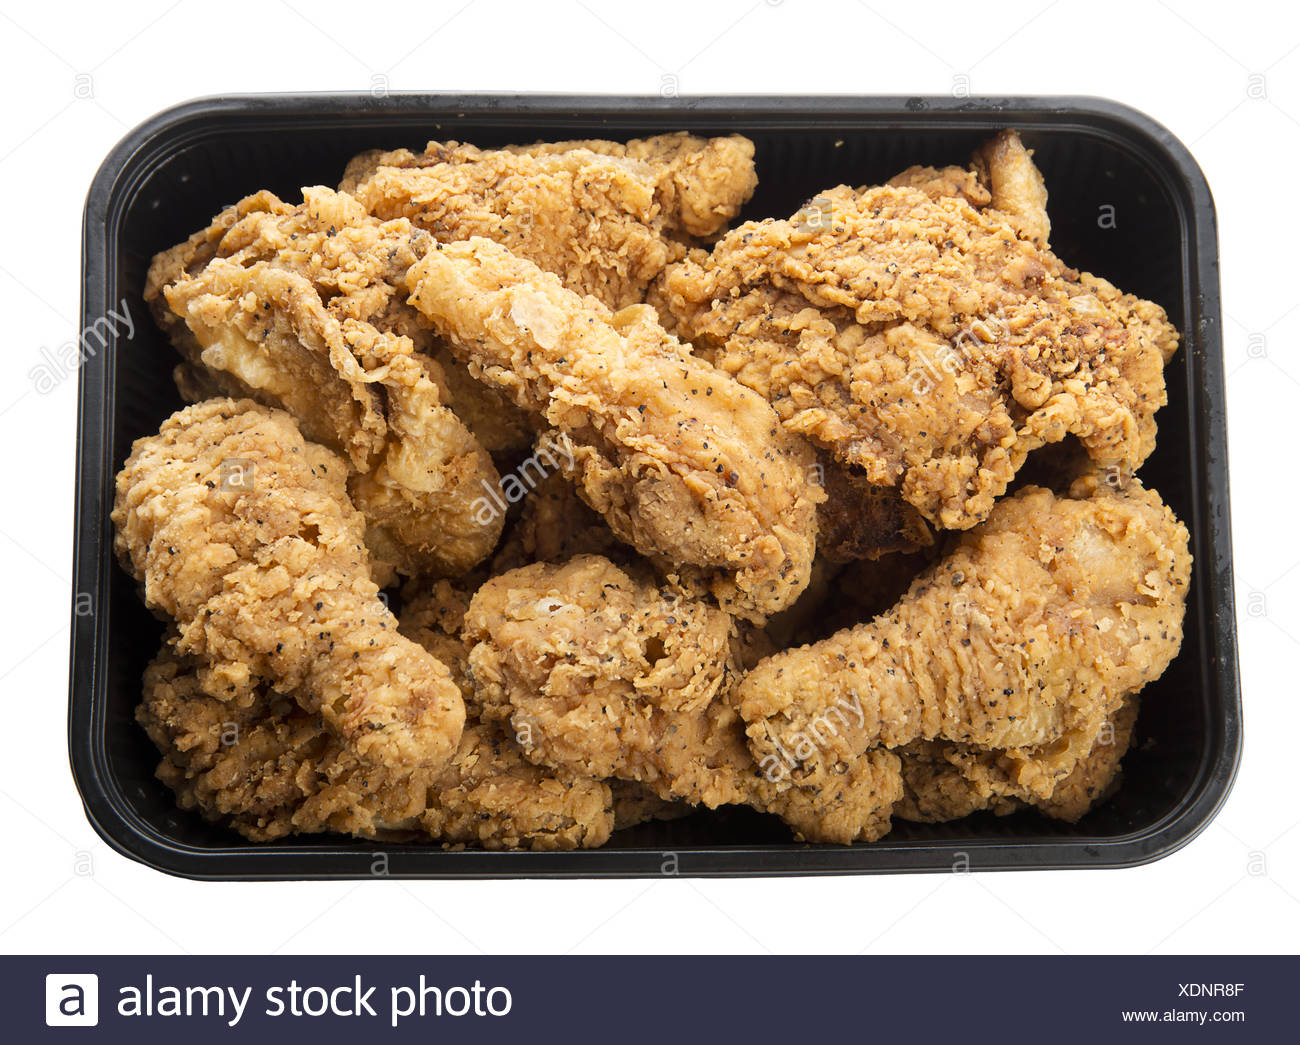 fried chicken in container - Stock Image